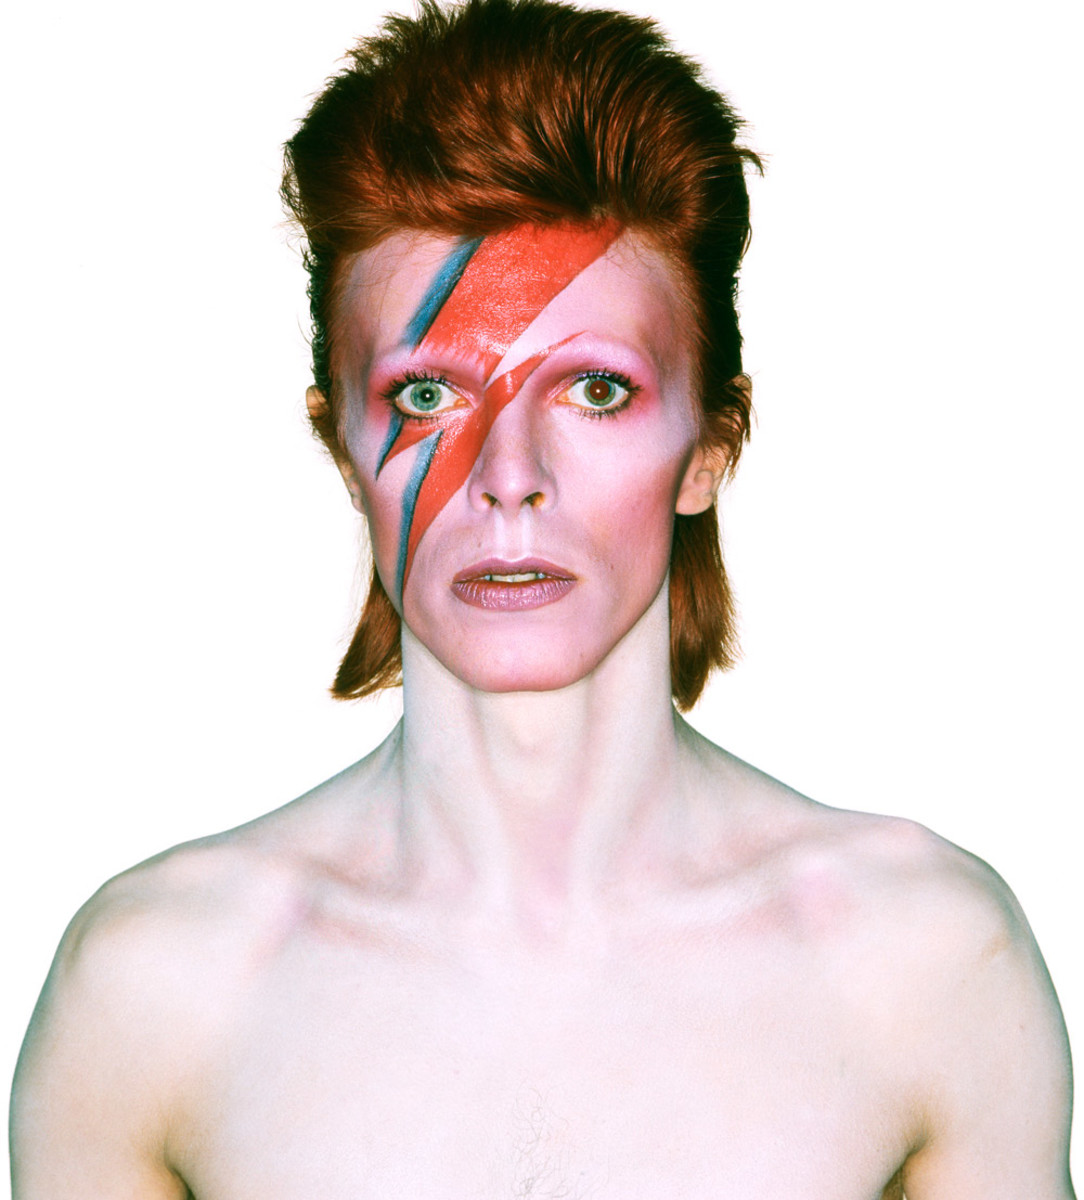 David Bowie in his Aladdin Sane era.